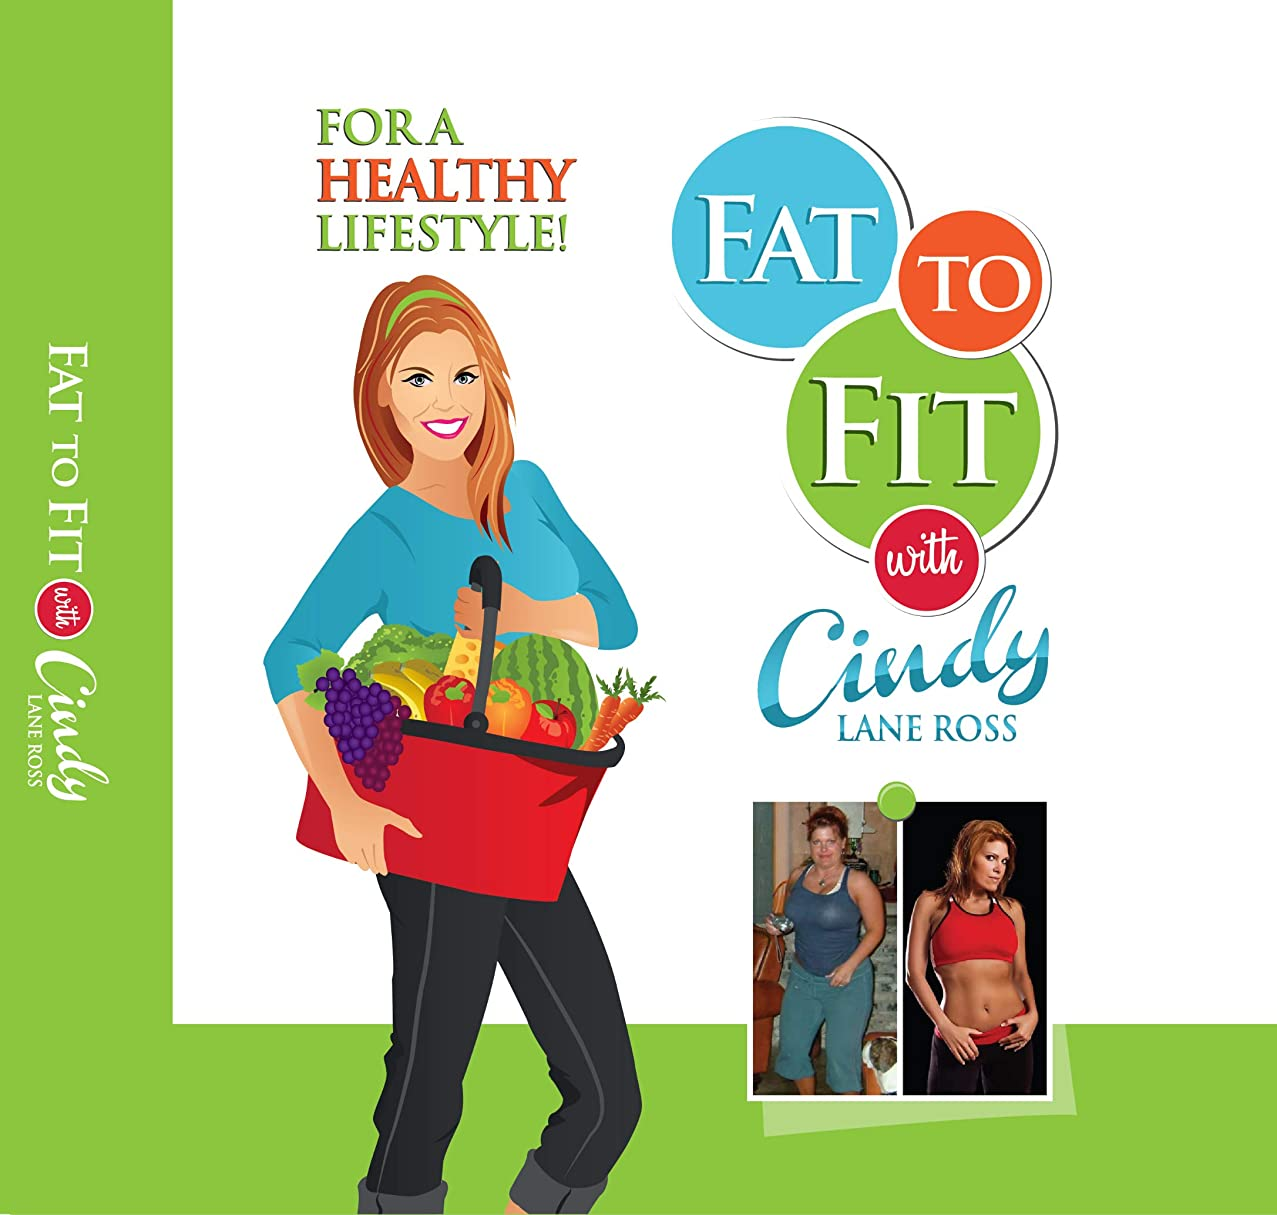 Fat to Fit  with Cindy Lane Ross: Your Kitchen Reference Guide (Fat to Fit with Cindy Lane Ross Book 1) (English Edition)